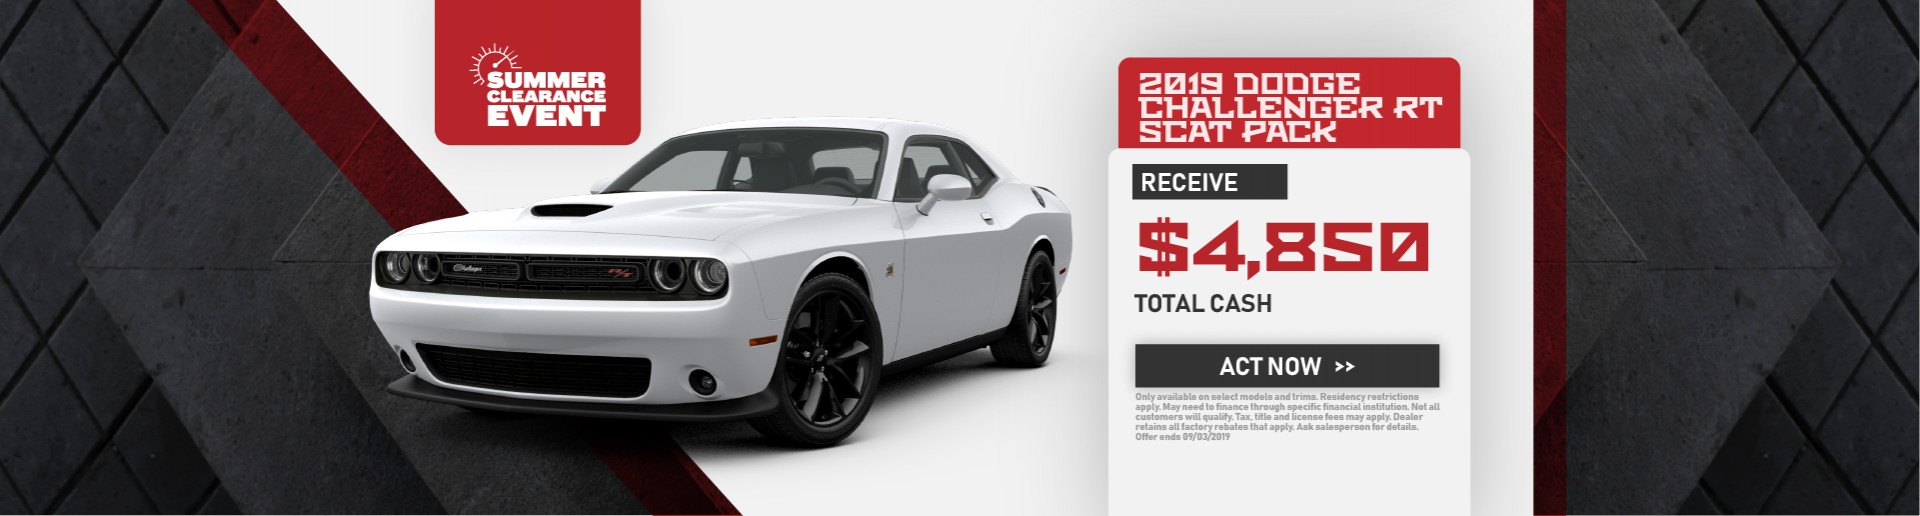 2019 Dodge Challenger RT Scat Pack